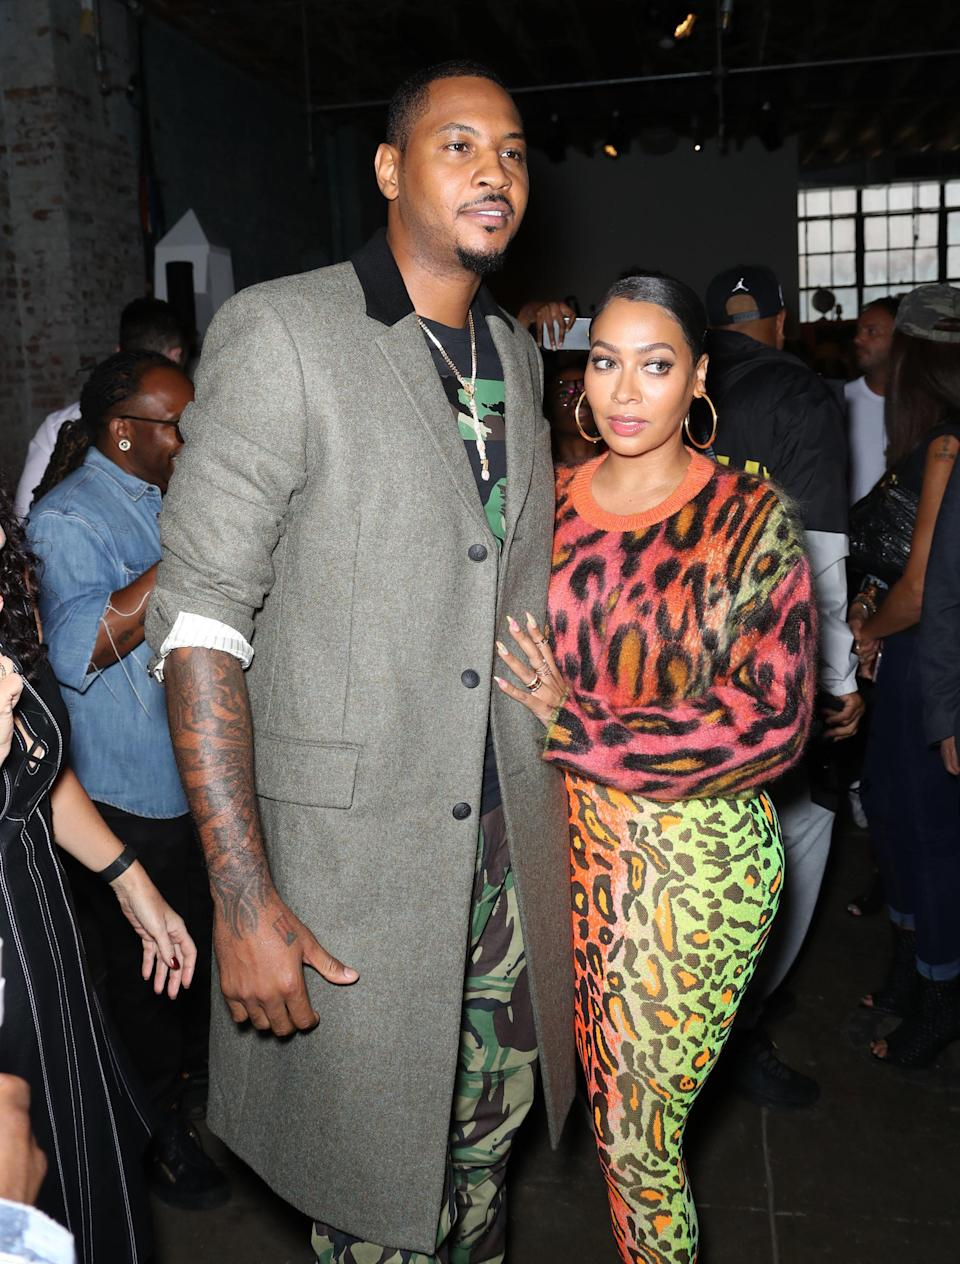 I love a loyal NBA couple, tbh. La La and Carmelo were married in 2010 before she filed for divorce in June of 2021. Their divorce isn't official yet, so maybe they'll reconcile and avoid breaking my heart.